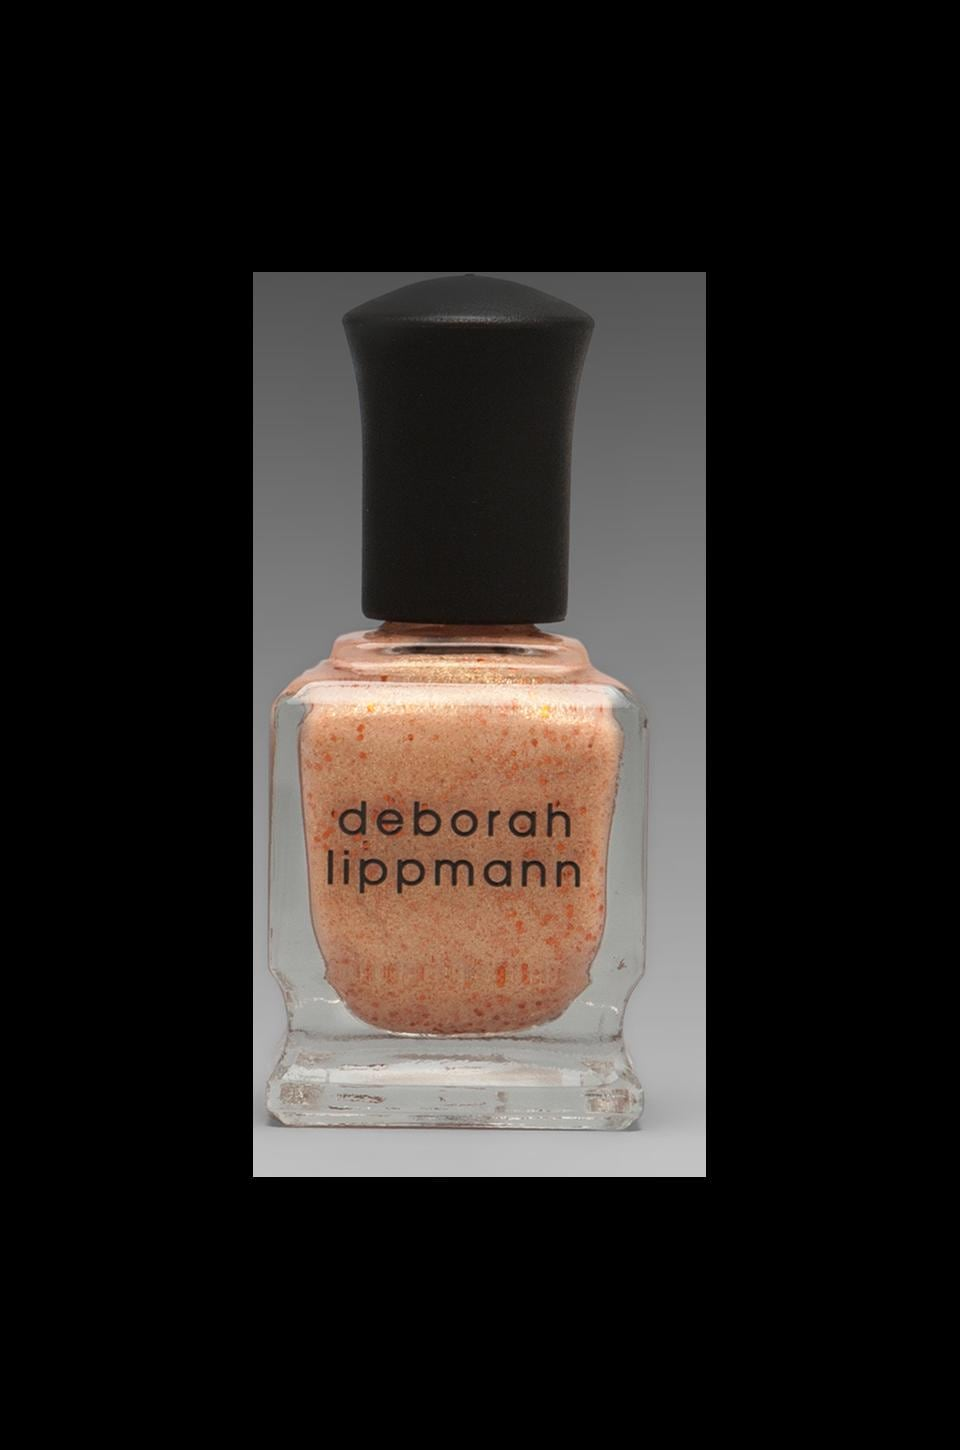 Deborah Lippmann Nail Lacquer in Million Dollar Mermaid